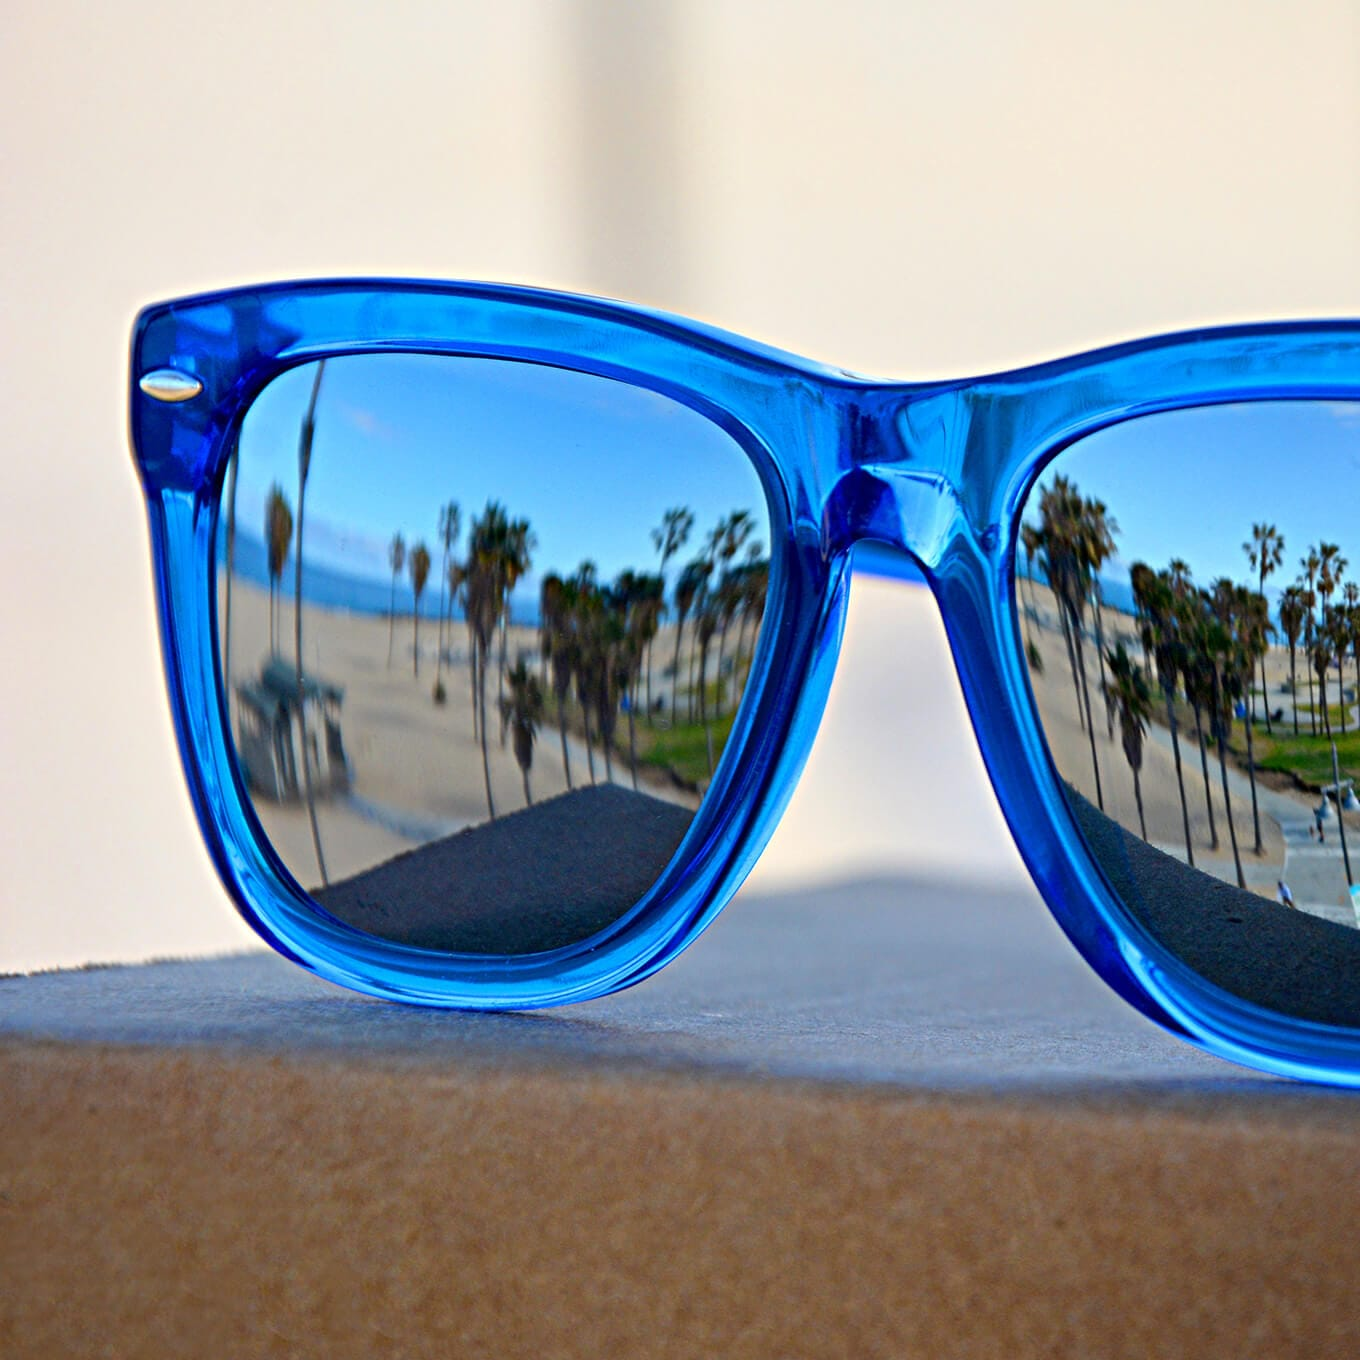 Olvera square acetate sunglasses in bright blue with mirror tint.